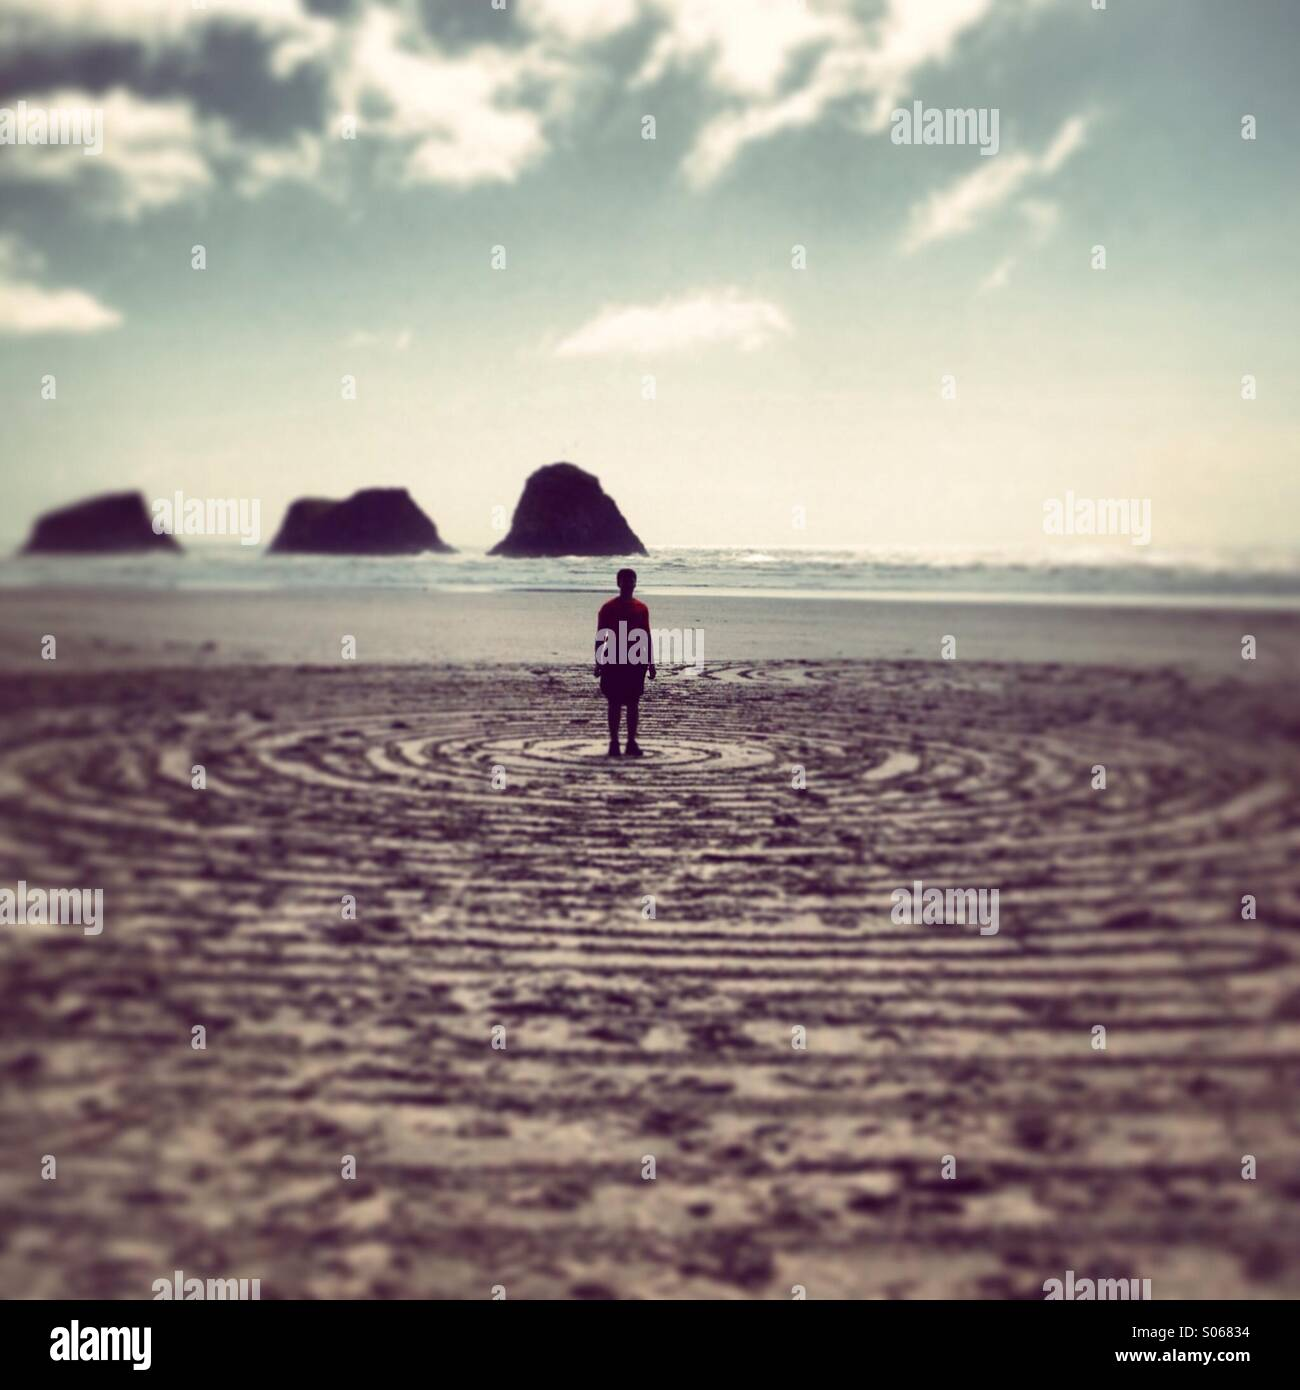 Boy in concentric circles on the beach - Stock Image